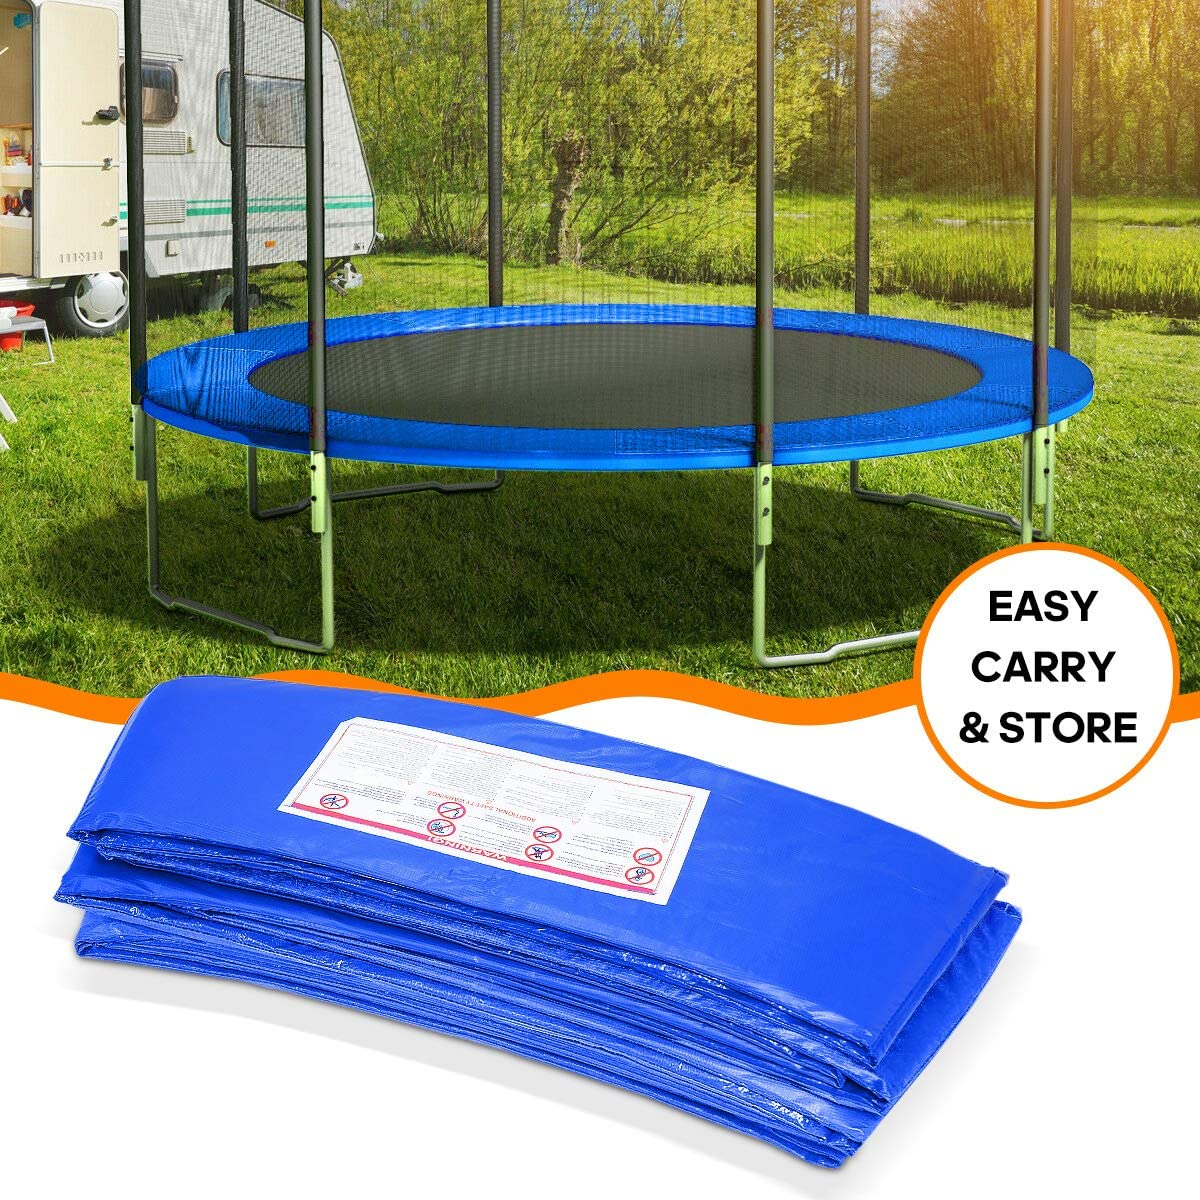 Jumpking Trampoline Pad Replacement Safety Pad 1INCH 12//14//15FT Trampoline Pad PVC Foam Waterproof Round Spring Cover/…